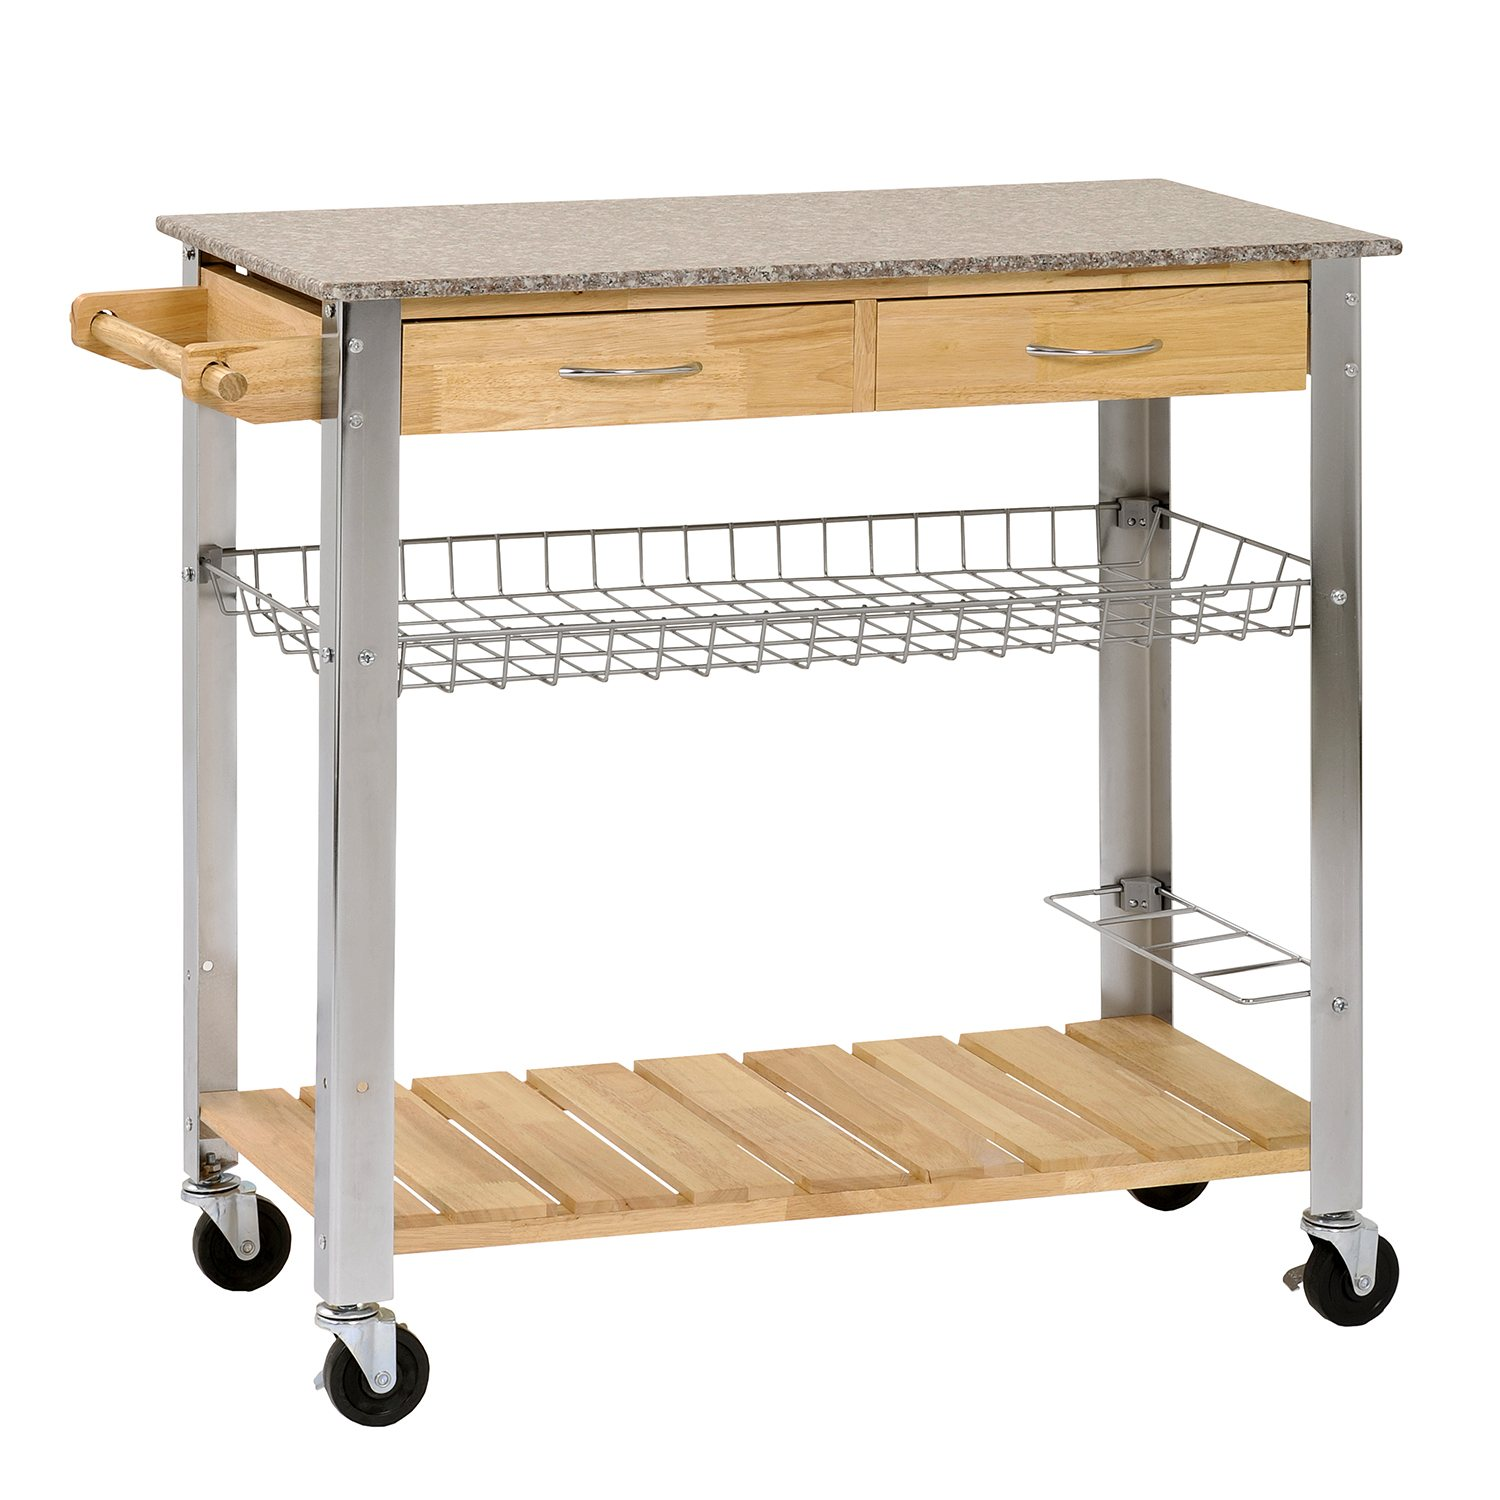 new kitchen trolley rolling cart wood steel legs 2 storage drawer